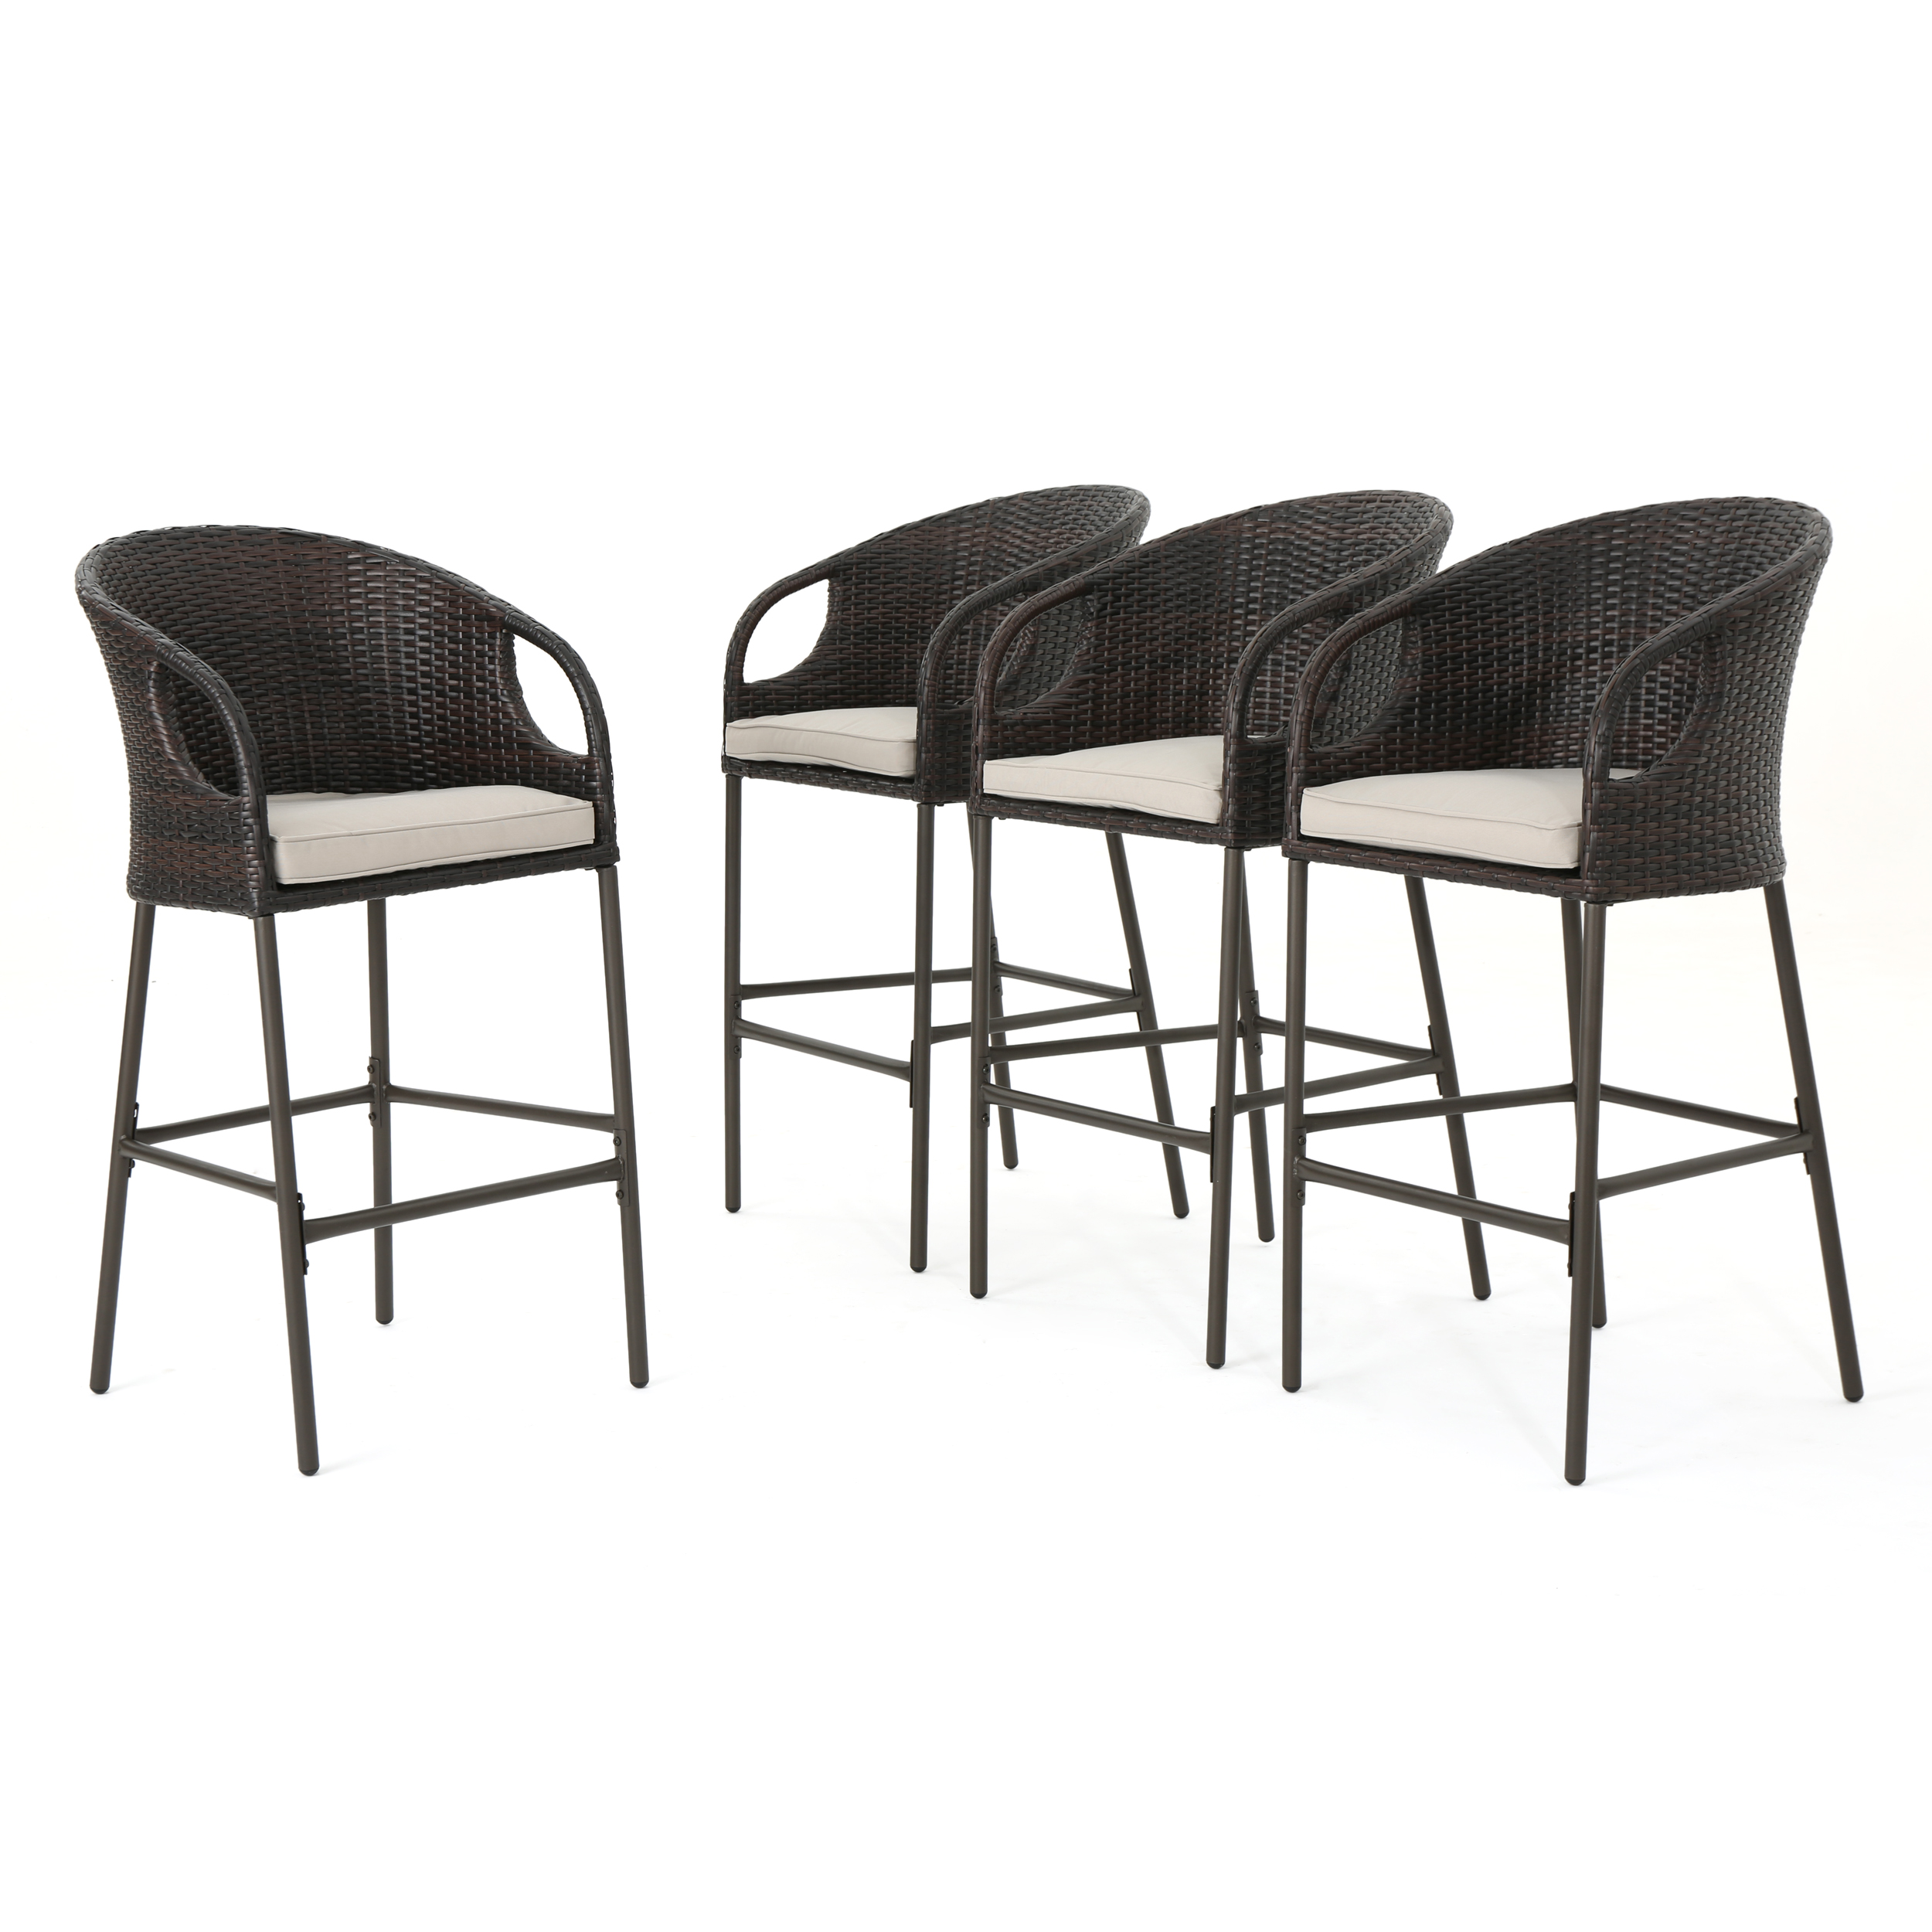 Dunlevy Outdoor Multibrown Wicker Barstools with Water Resistant Cushions, Set of 4, Light Brown